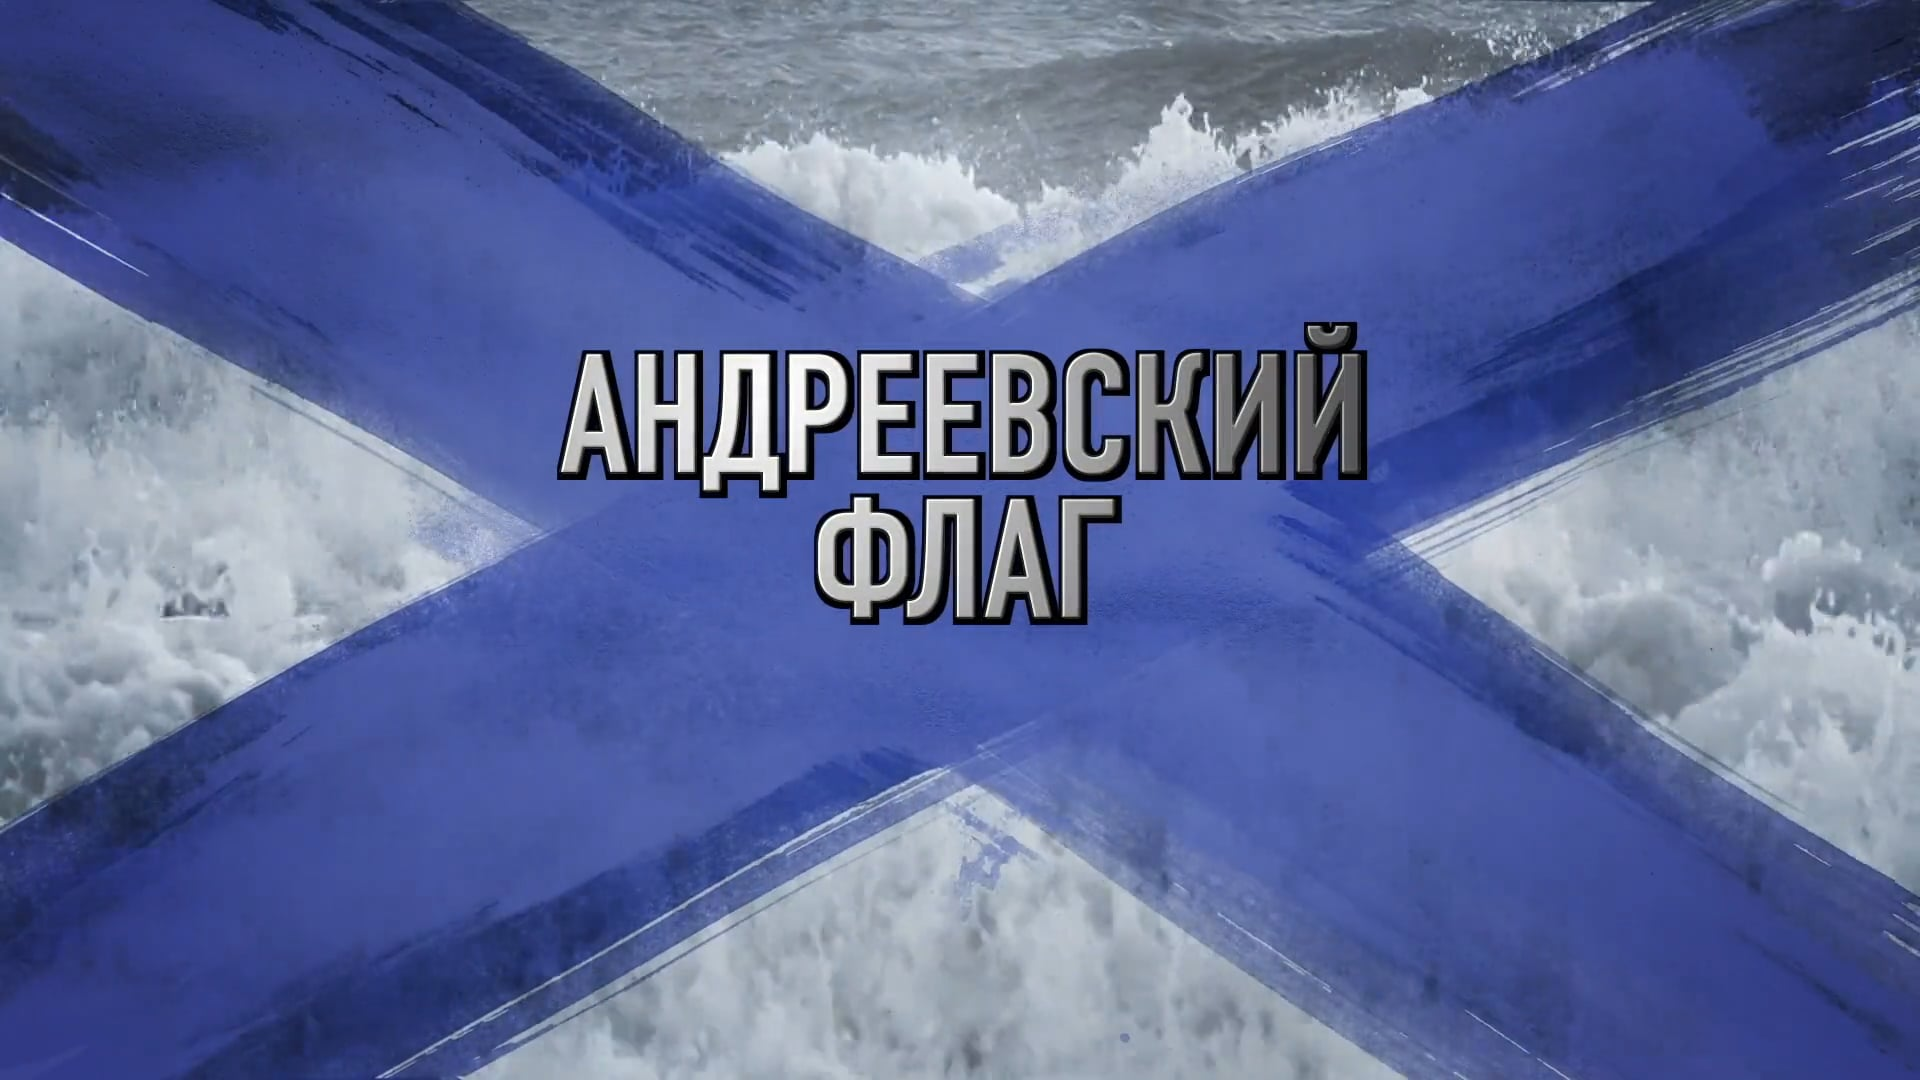 St. Andrew's Flag opening titles